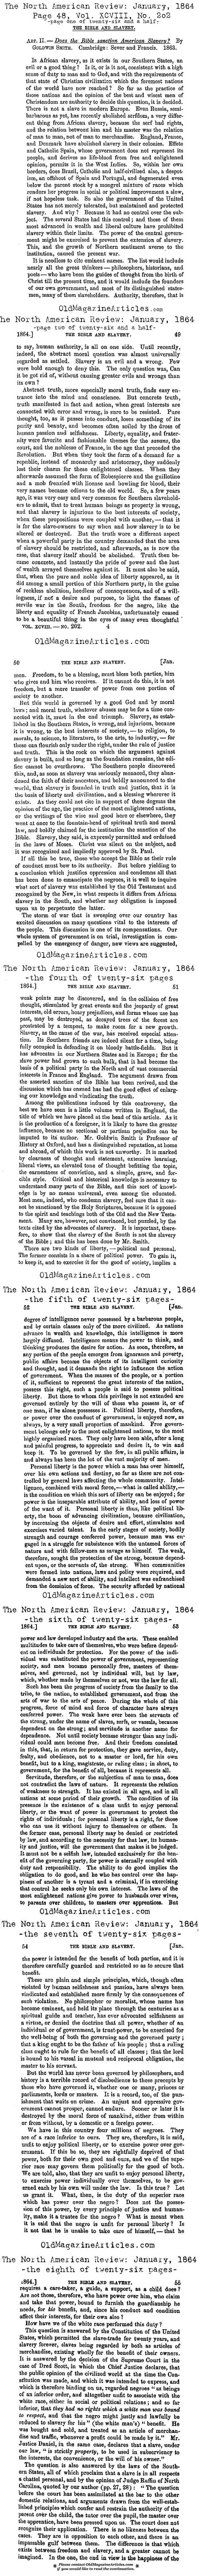 The Bible and Slavery   (The North American Review, 1864)